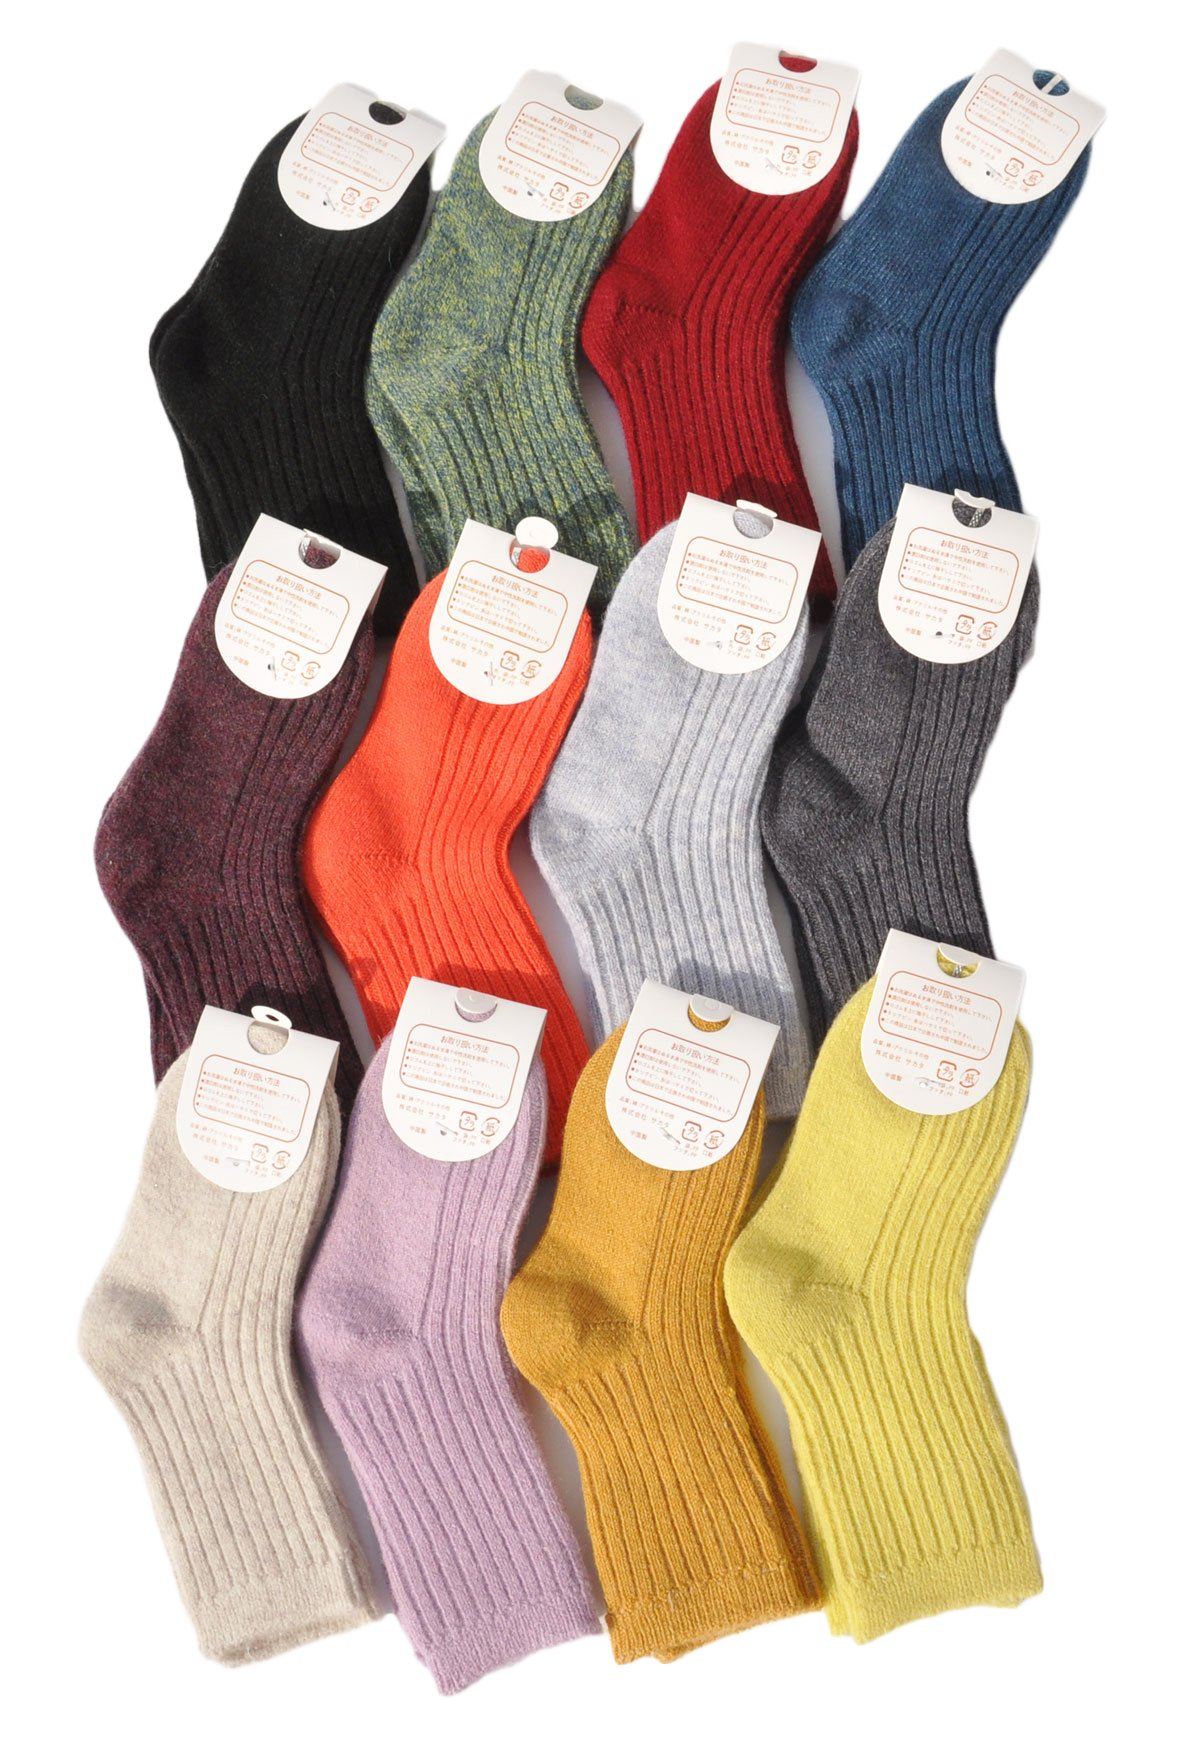 Lian LifeStyle Girl's 10 Pairs Pack Cashmere Wool Crew Socks Solid Size 22-25CM/10Y and Up by Lian LifeStyle